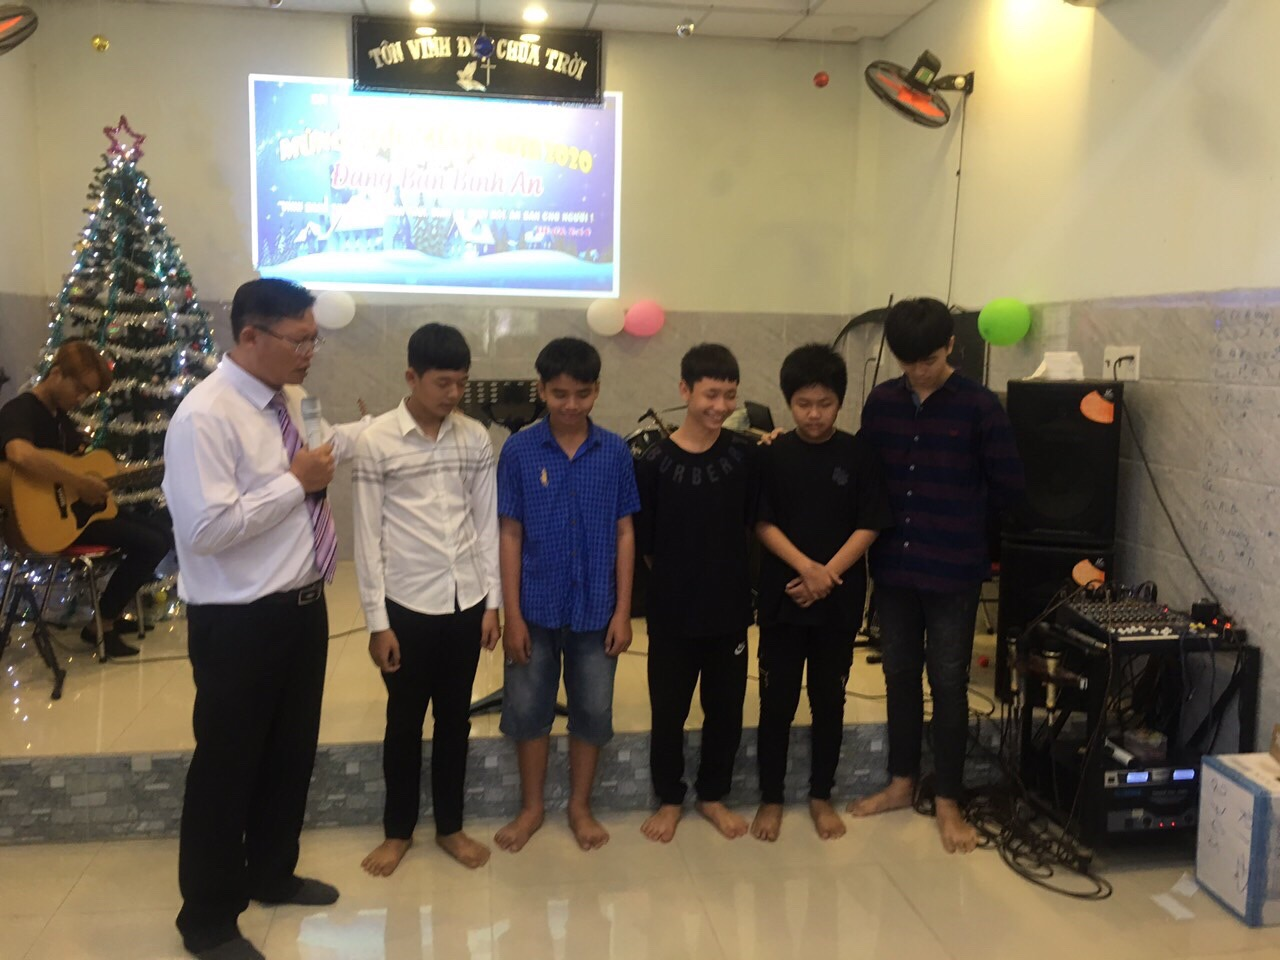 Four New Christians in Mekong Delta